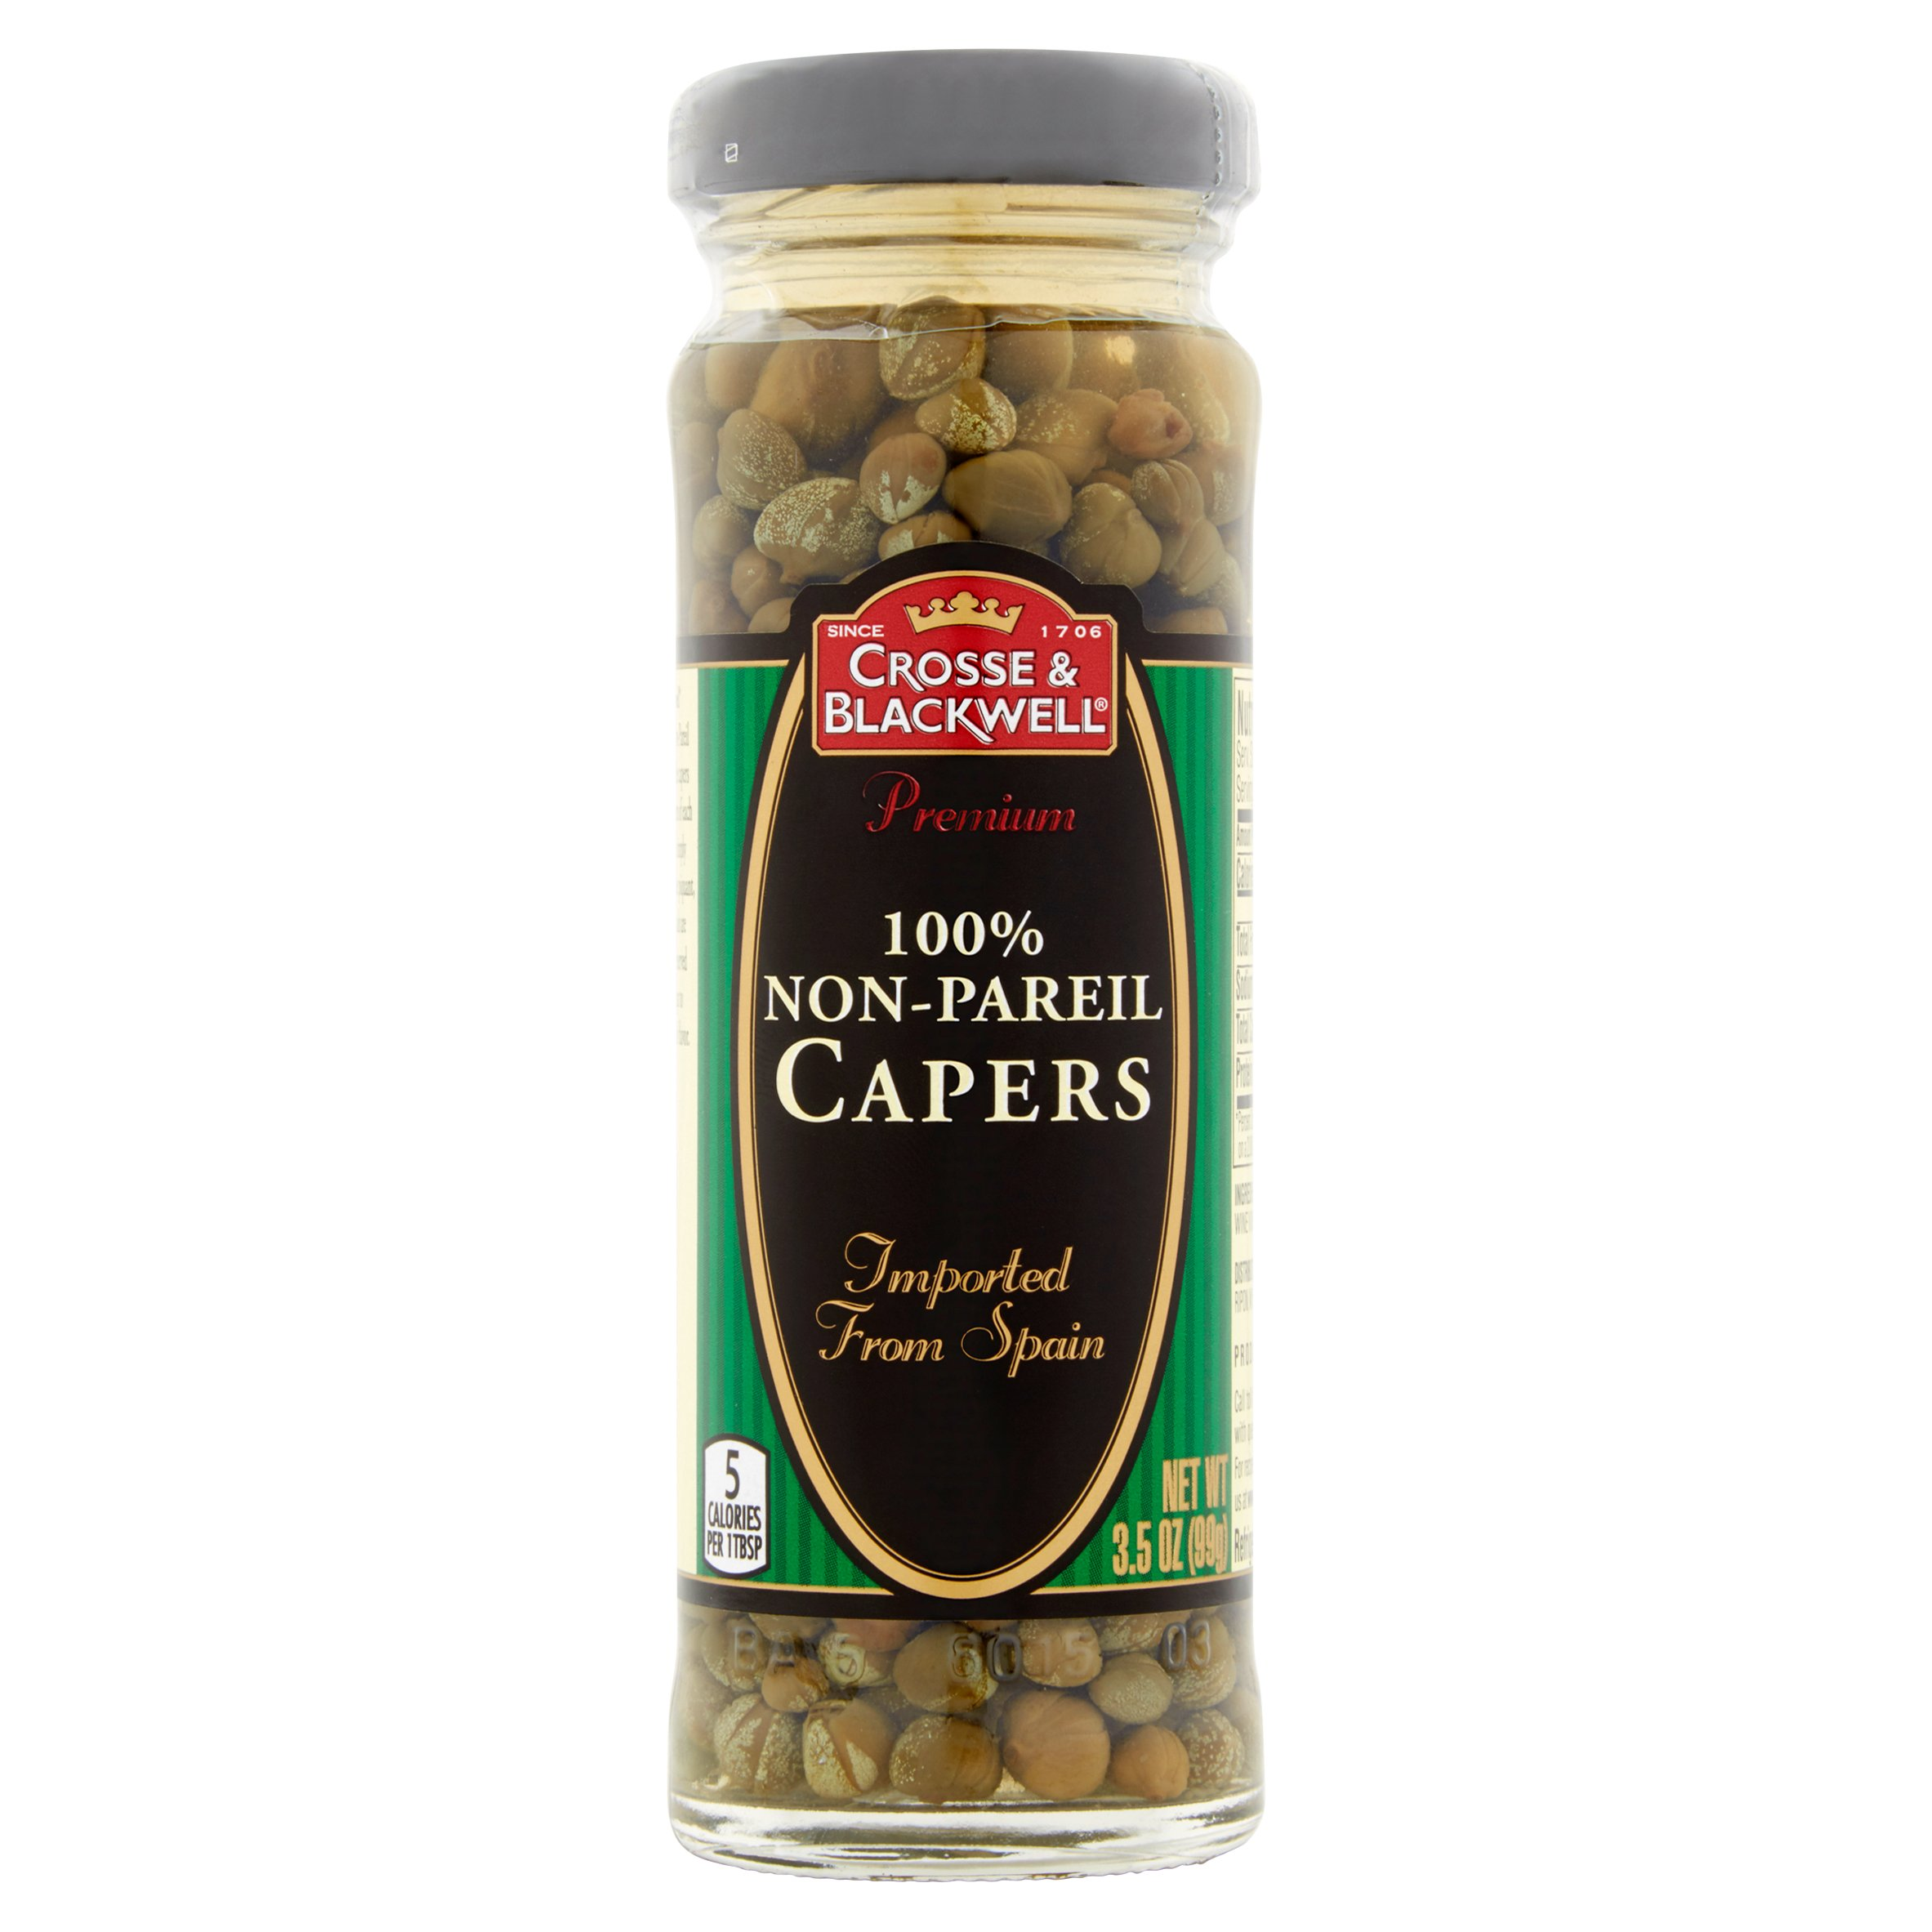 Crosse & Blackwell 100% Non-Pareil Capers, 3.5 OZ by J.M. Smucker LLC